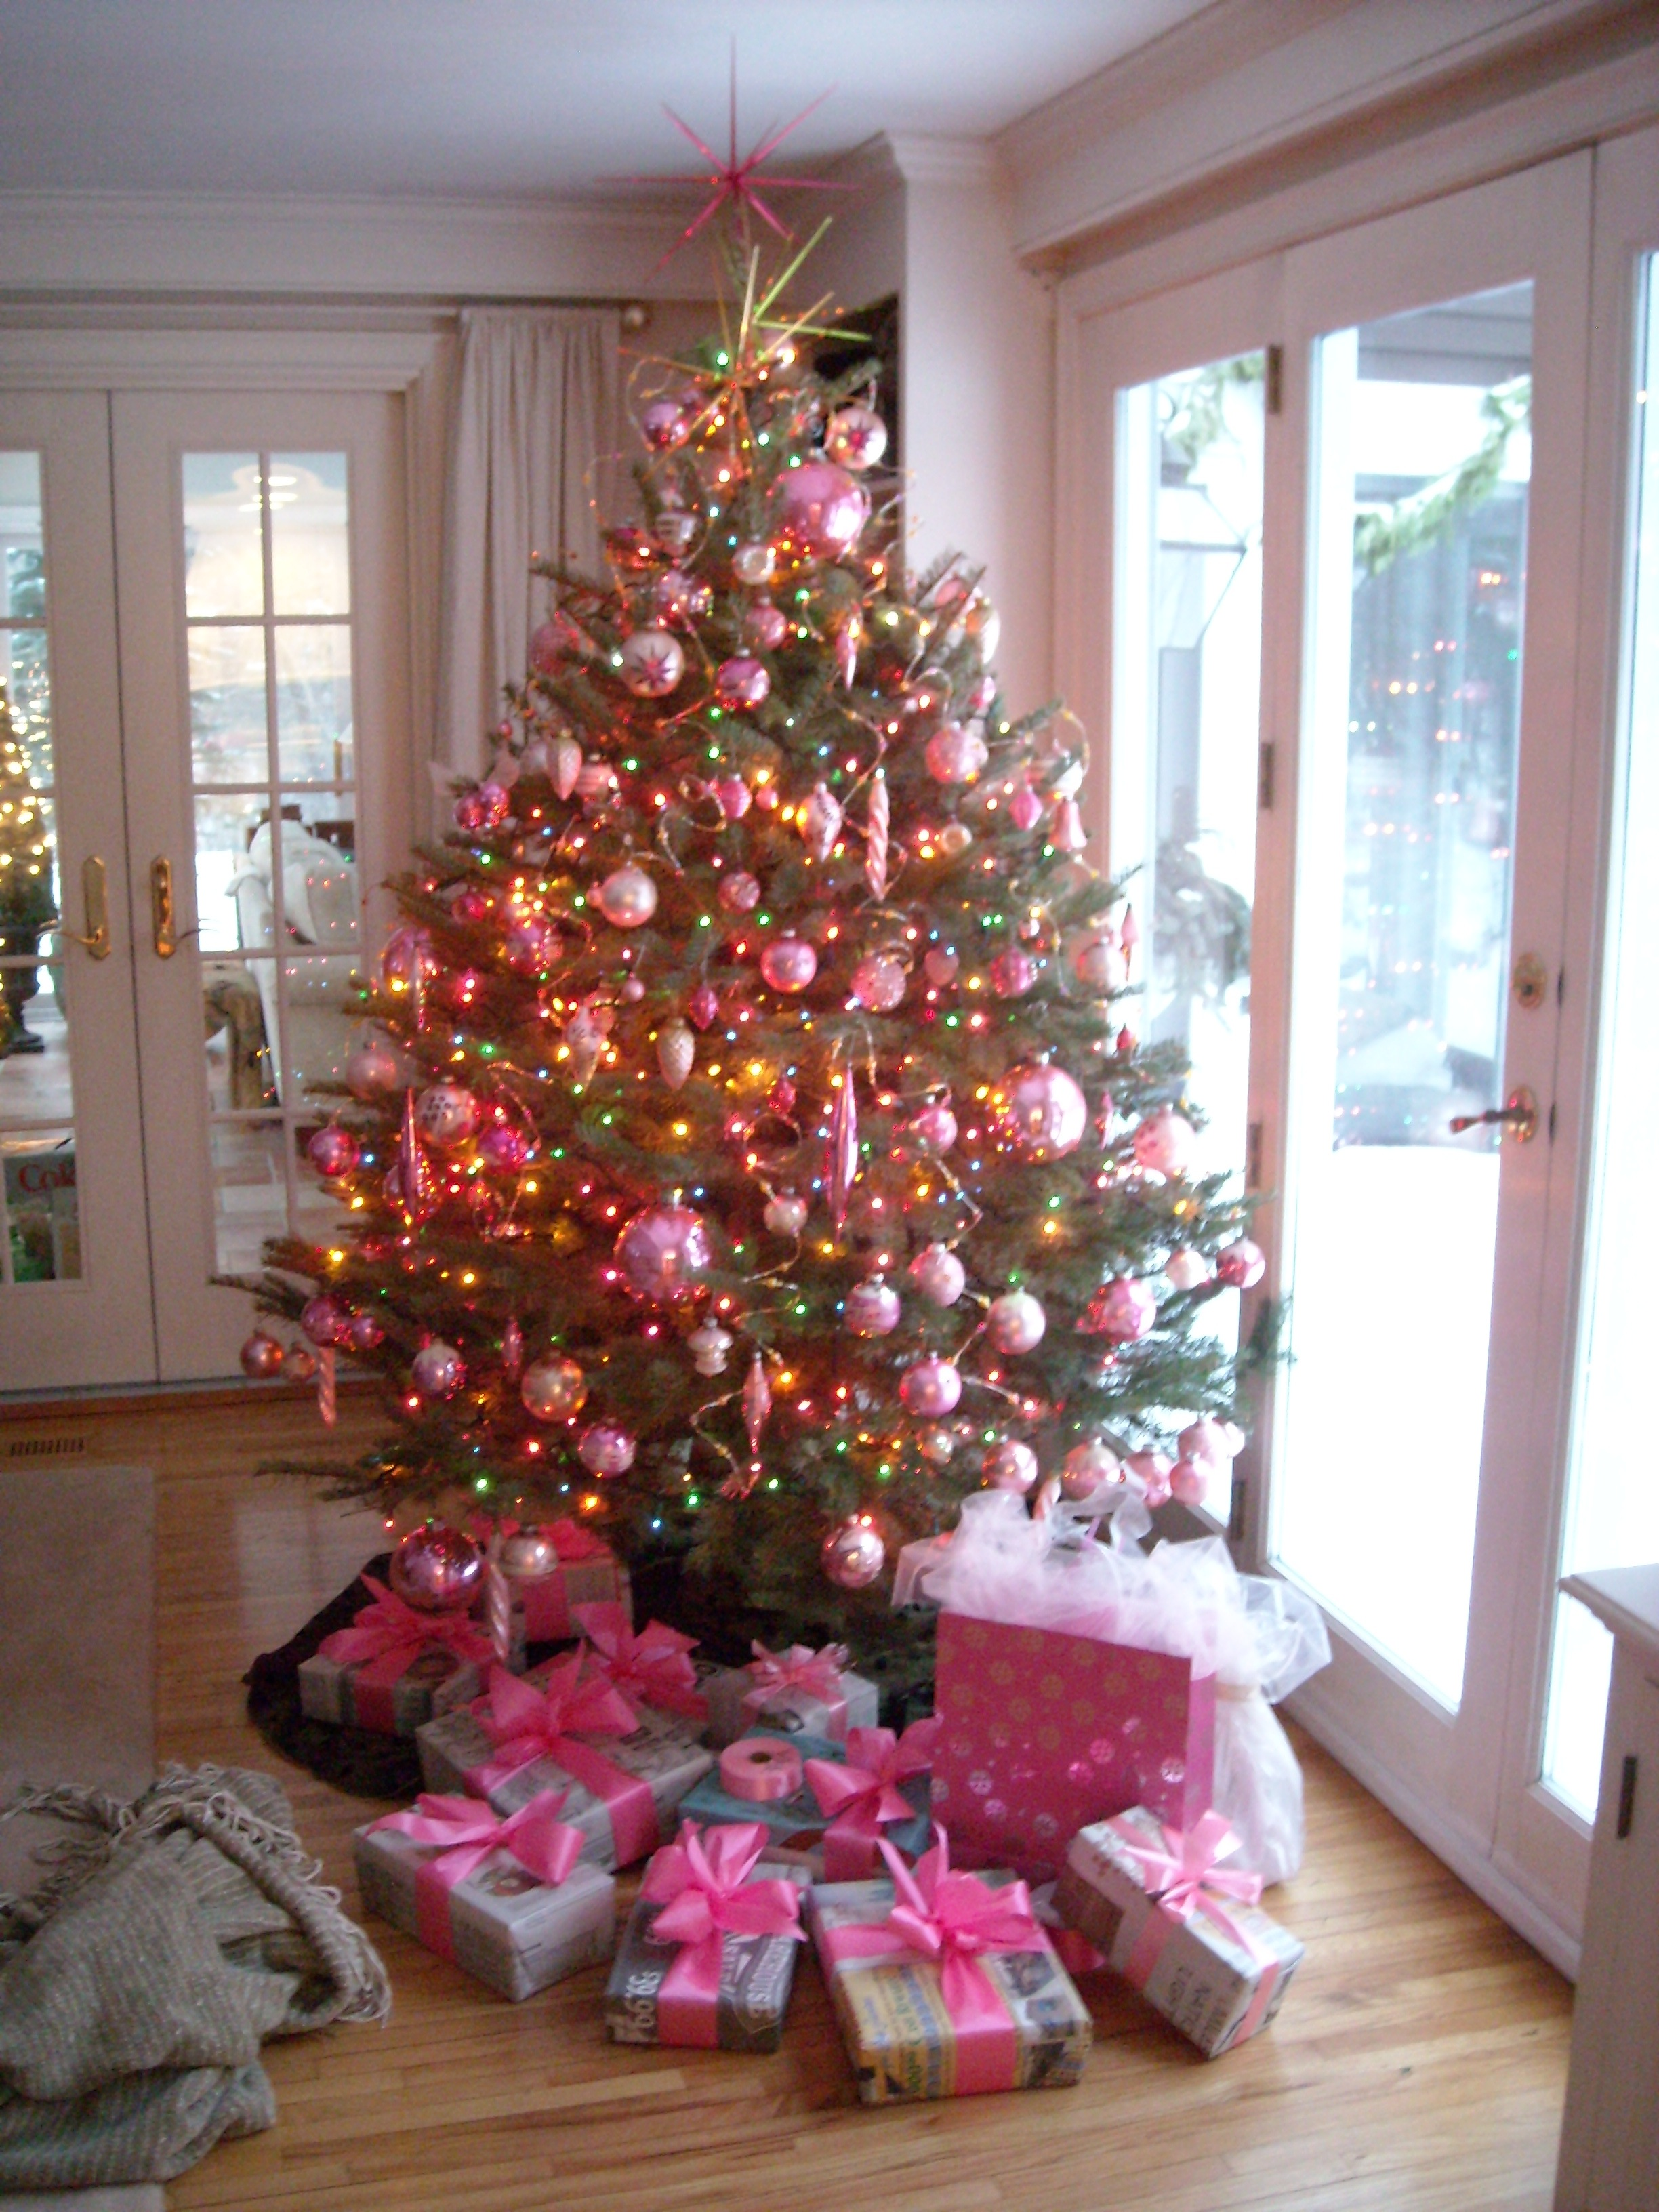 The pink ornaments a breakfast serial for Christmas tree with red and silver decorations